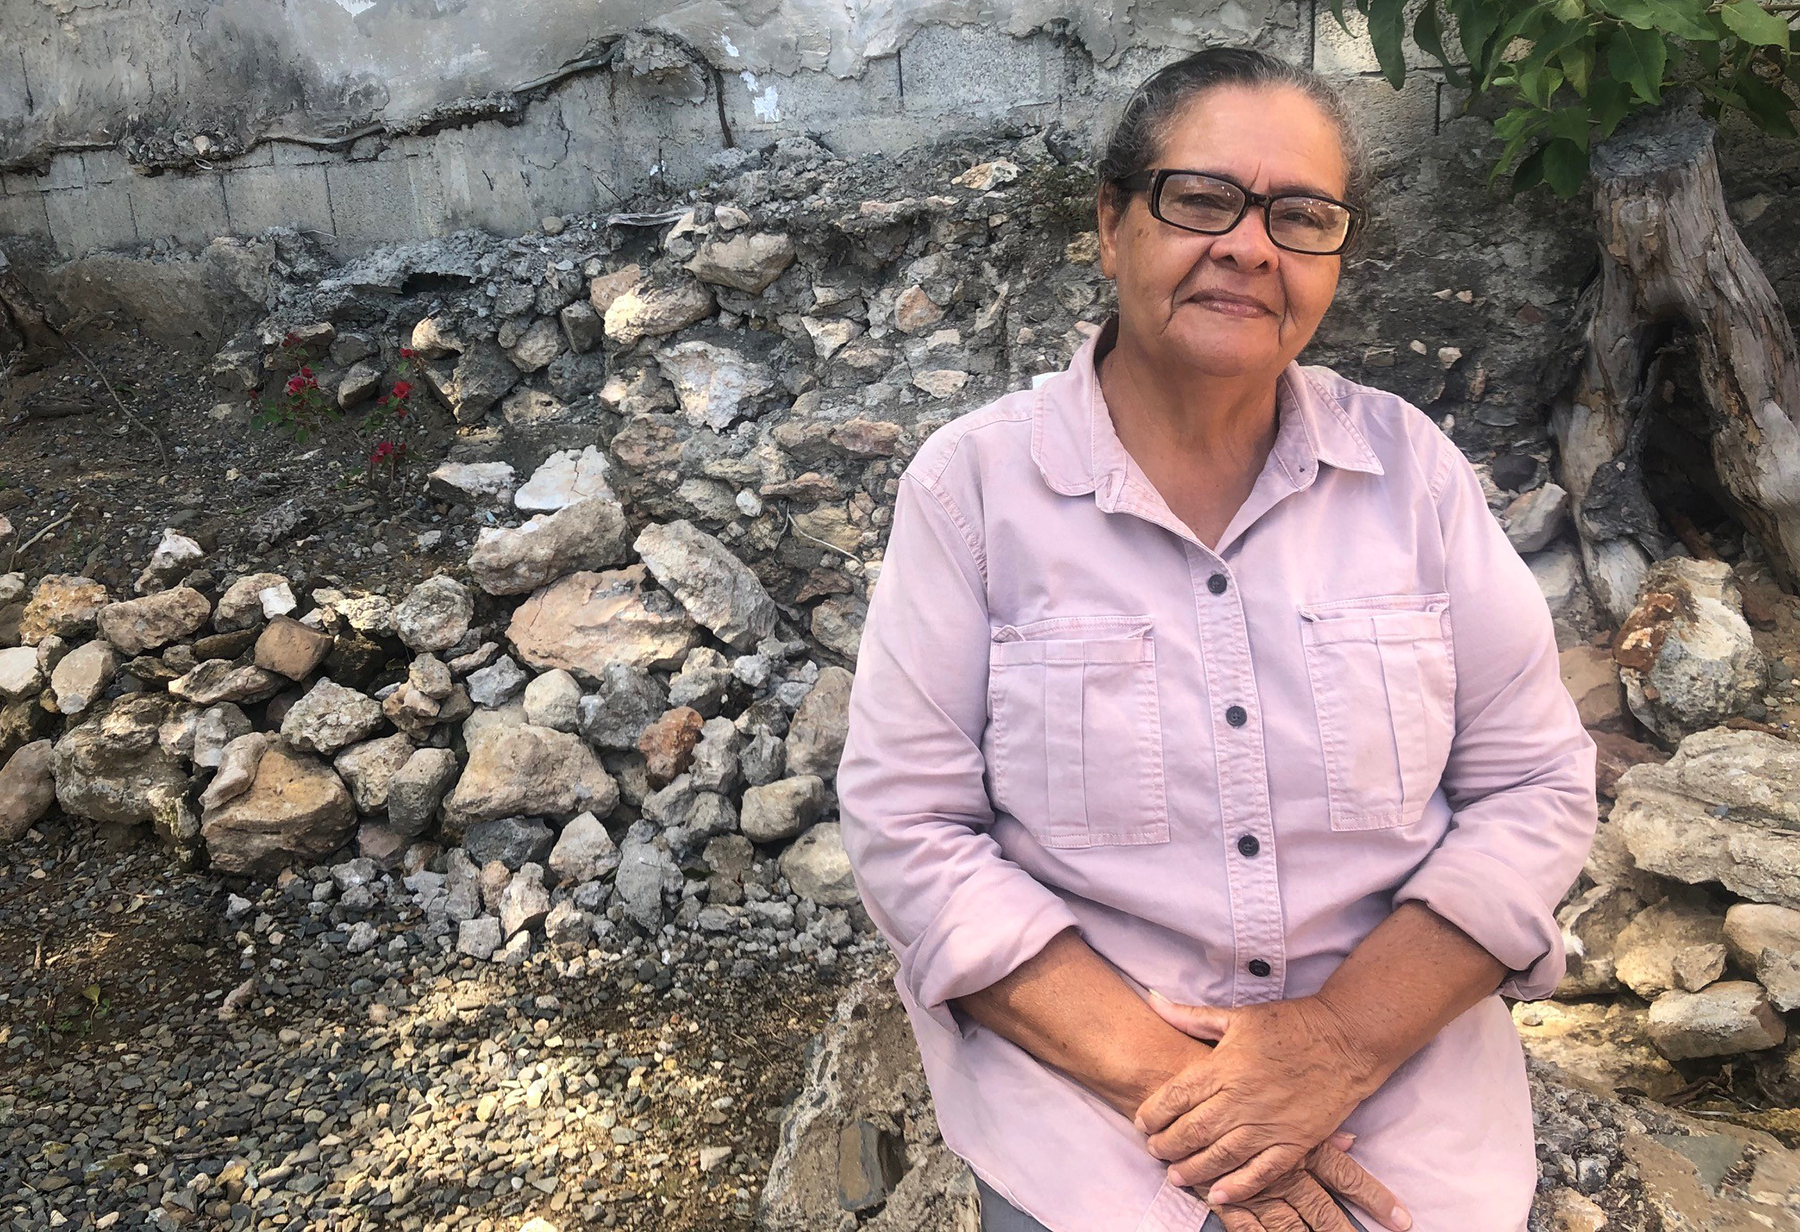 Minerva Rodriguez, a pastor in Yauco, Puerto Rico, sits in front of her church that was damaged during recent earthquakes on the island. Rodriguez was one of the community leaders that helped establish outdoor communities as aftershocks continued. (Photo by Alejandra Rosa Morales for Direct Relief)